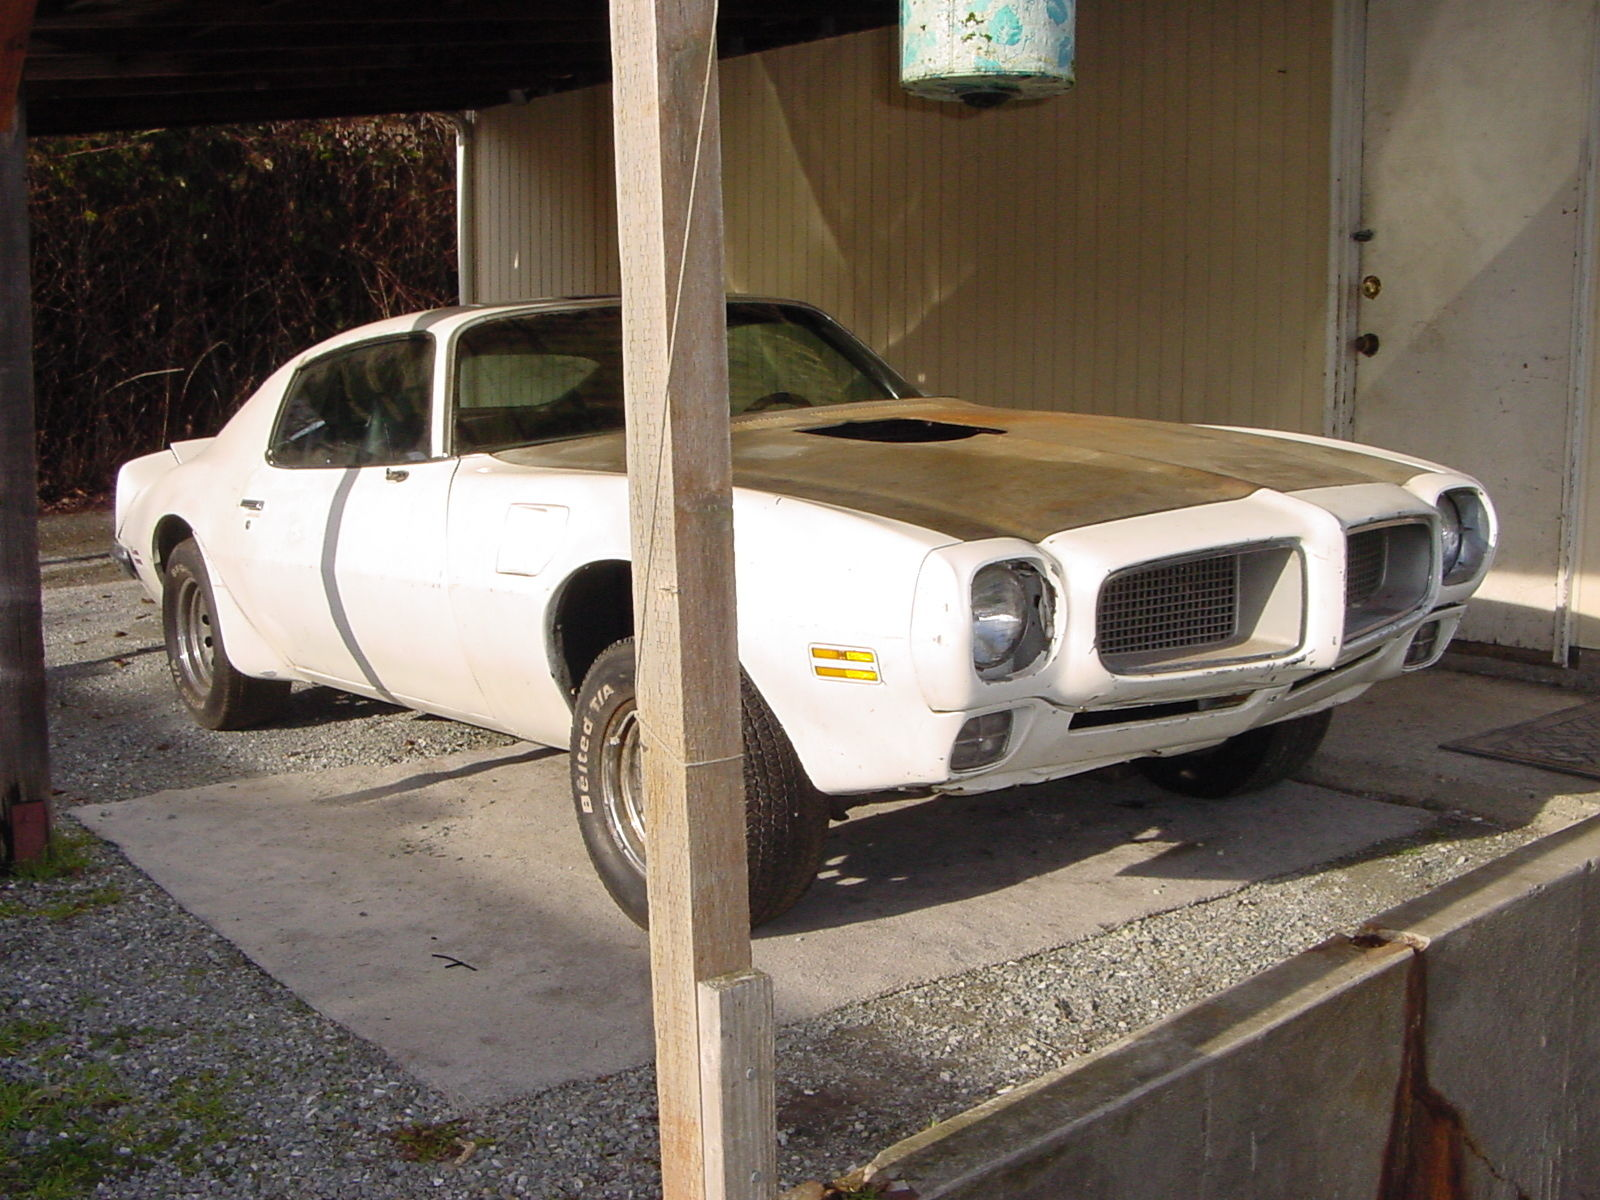 Vehicles For Sale: 1970 Pontiac Trans Am Clone Barn Find Project For Sale